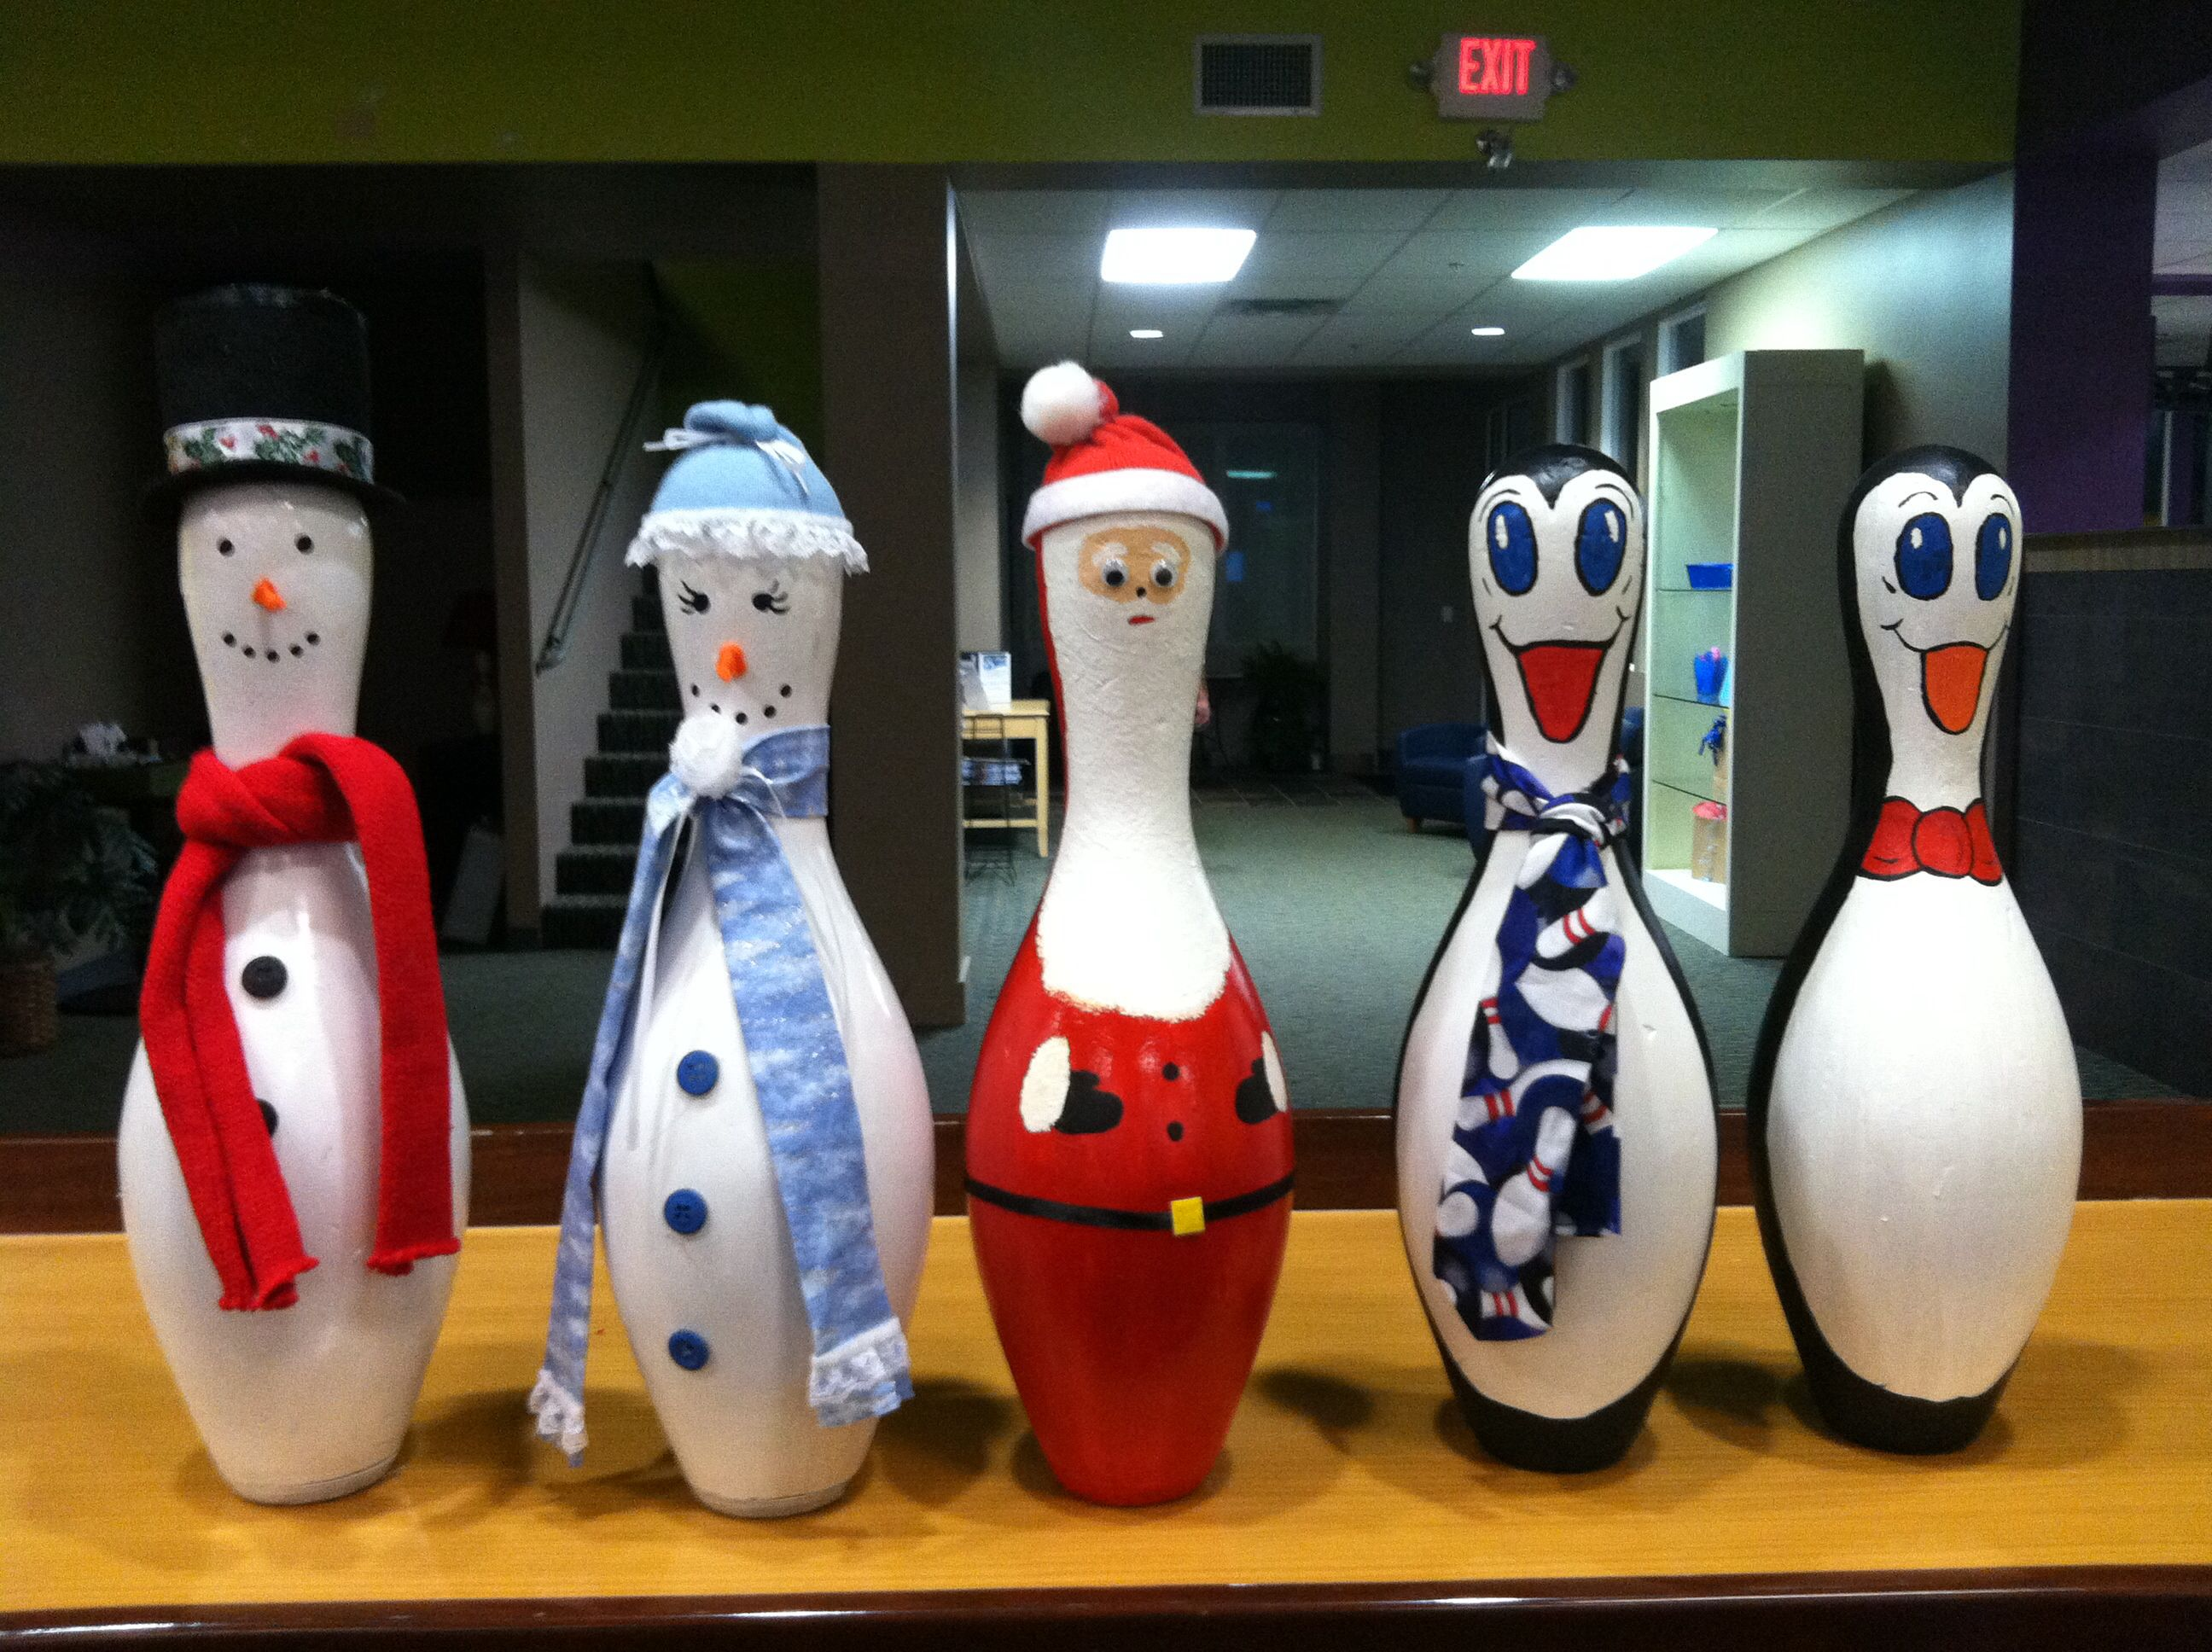 My Winter Friends Made From Bowling Pins Bowling Pin Crafts Snowman Crafts Bowling Pins